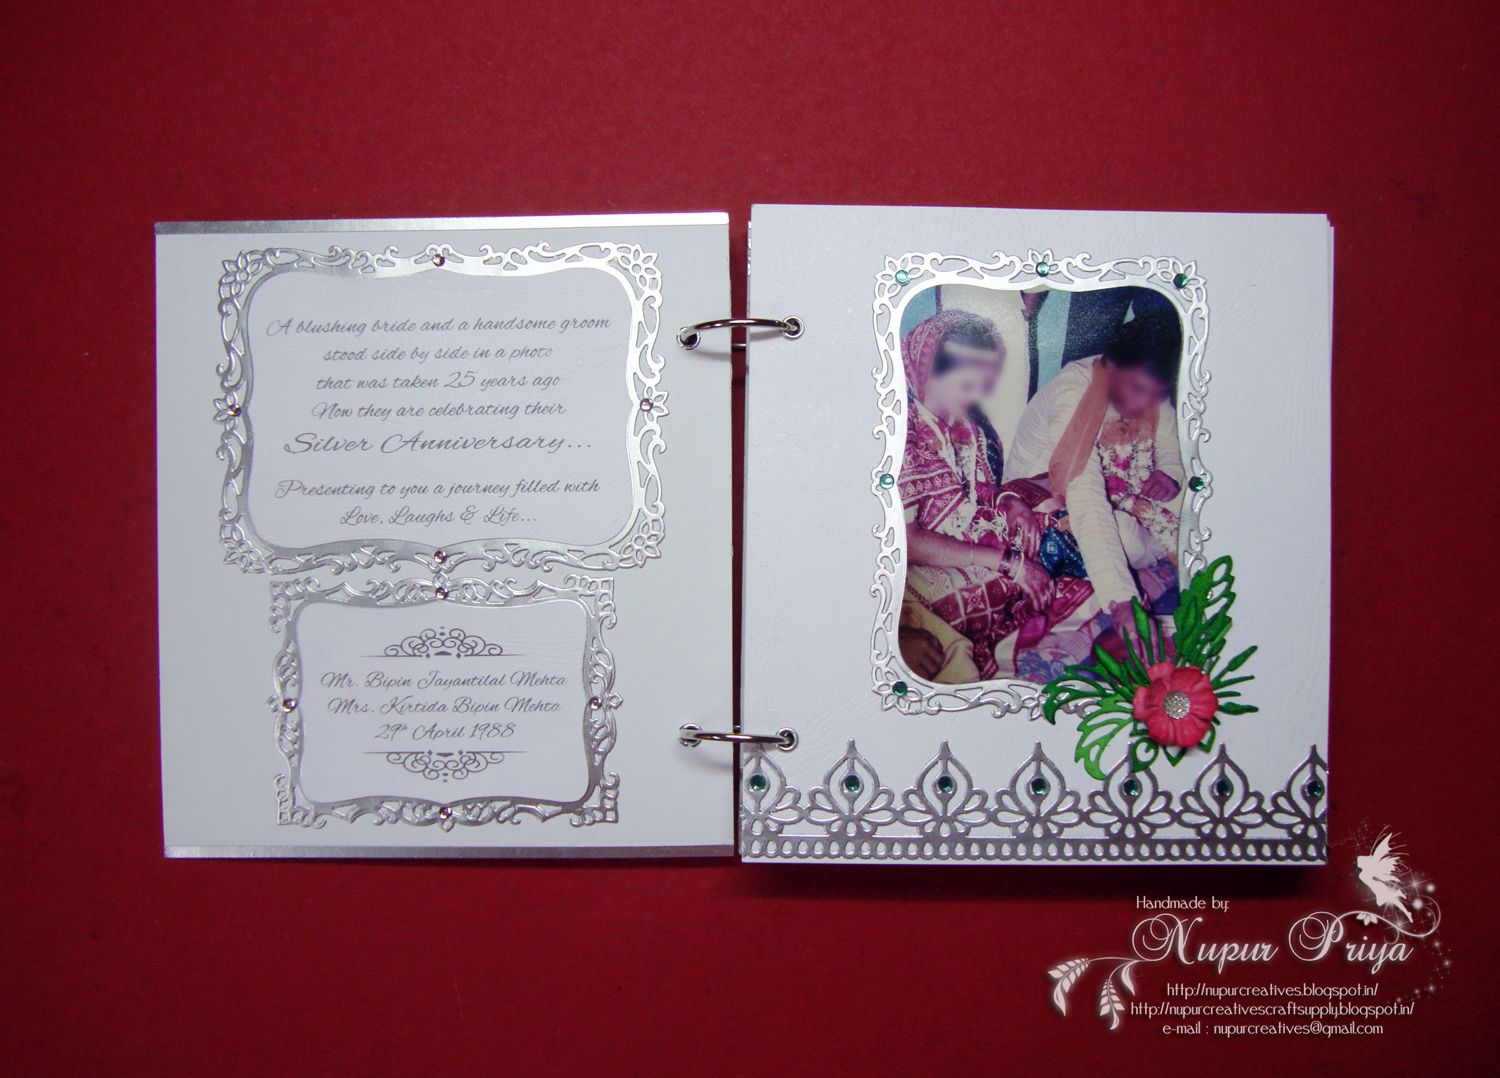 Nupur creatives th wedding anniversary scrapbook projects by